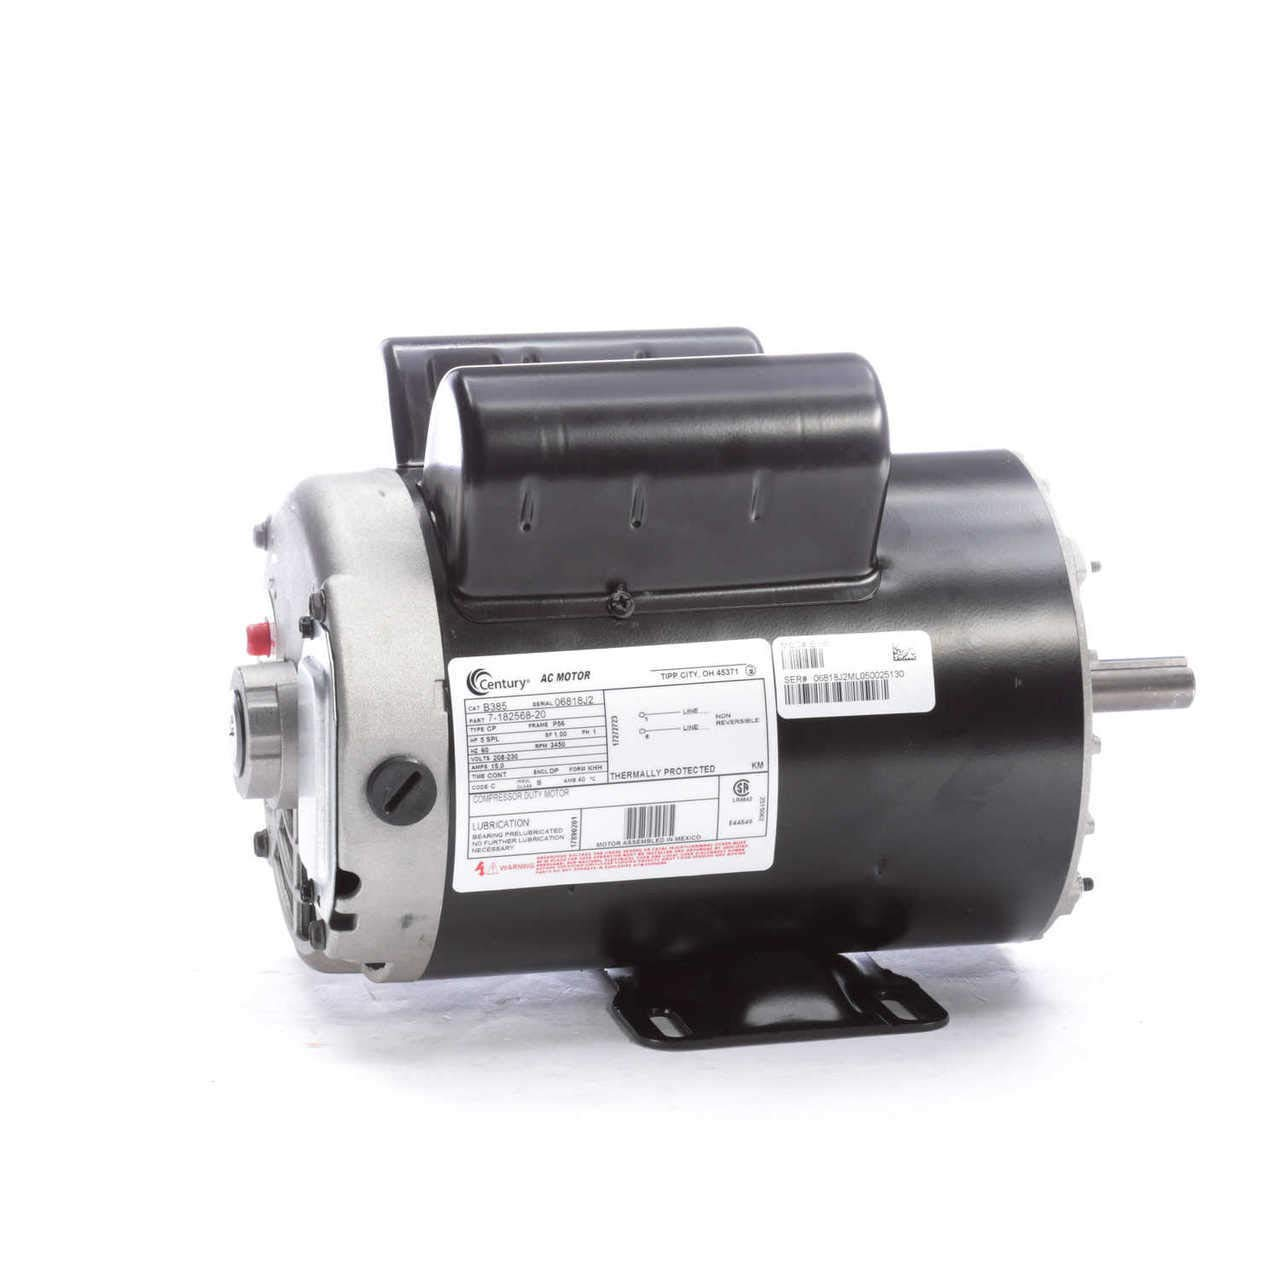 5 HP SPL 3450rpm P56 Frame 230 Volts Replacement Air Compressor Motor Ge Single Phase Air Compressor Motor Wiring Diagram on